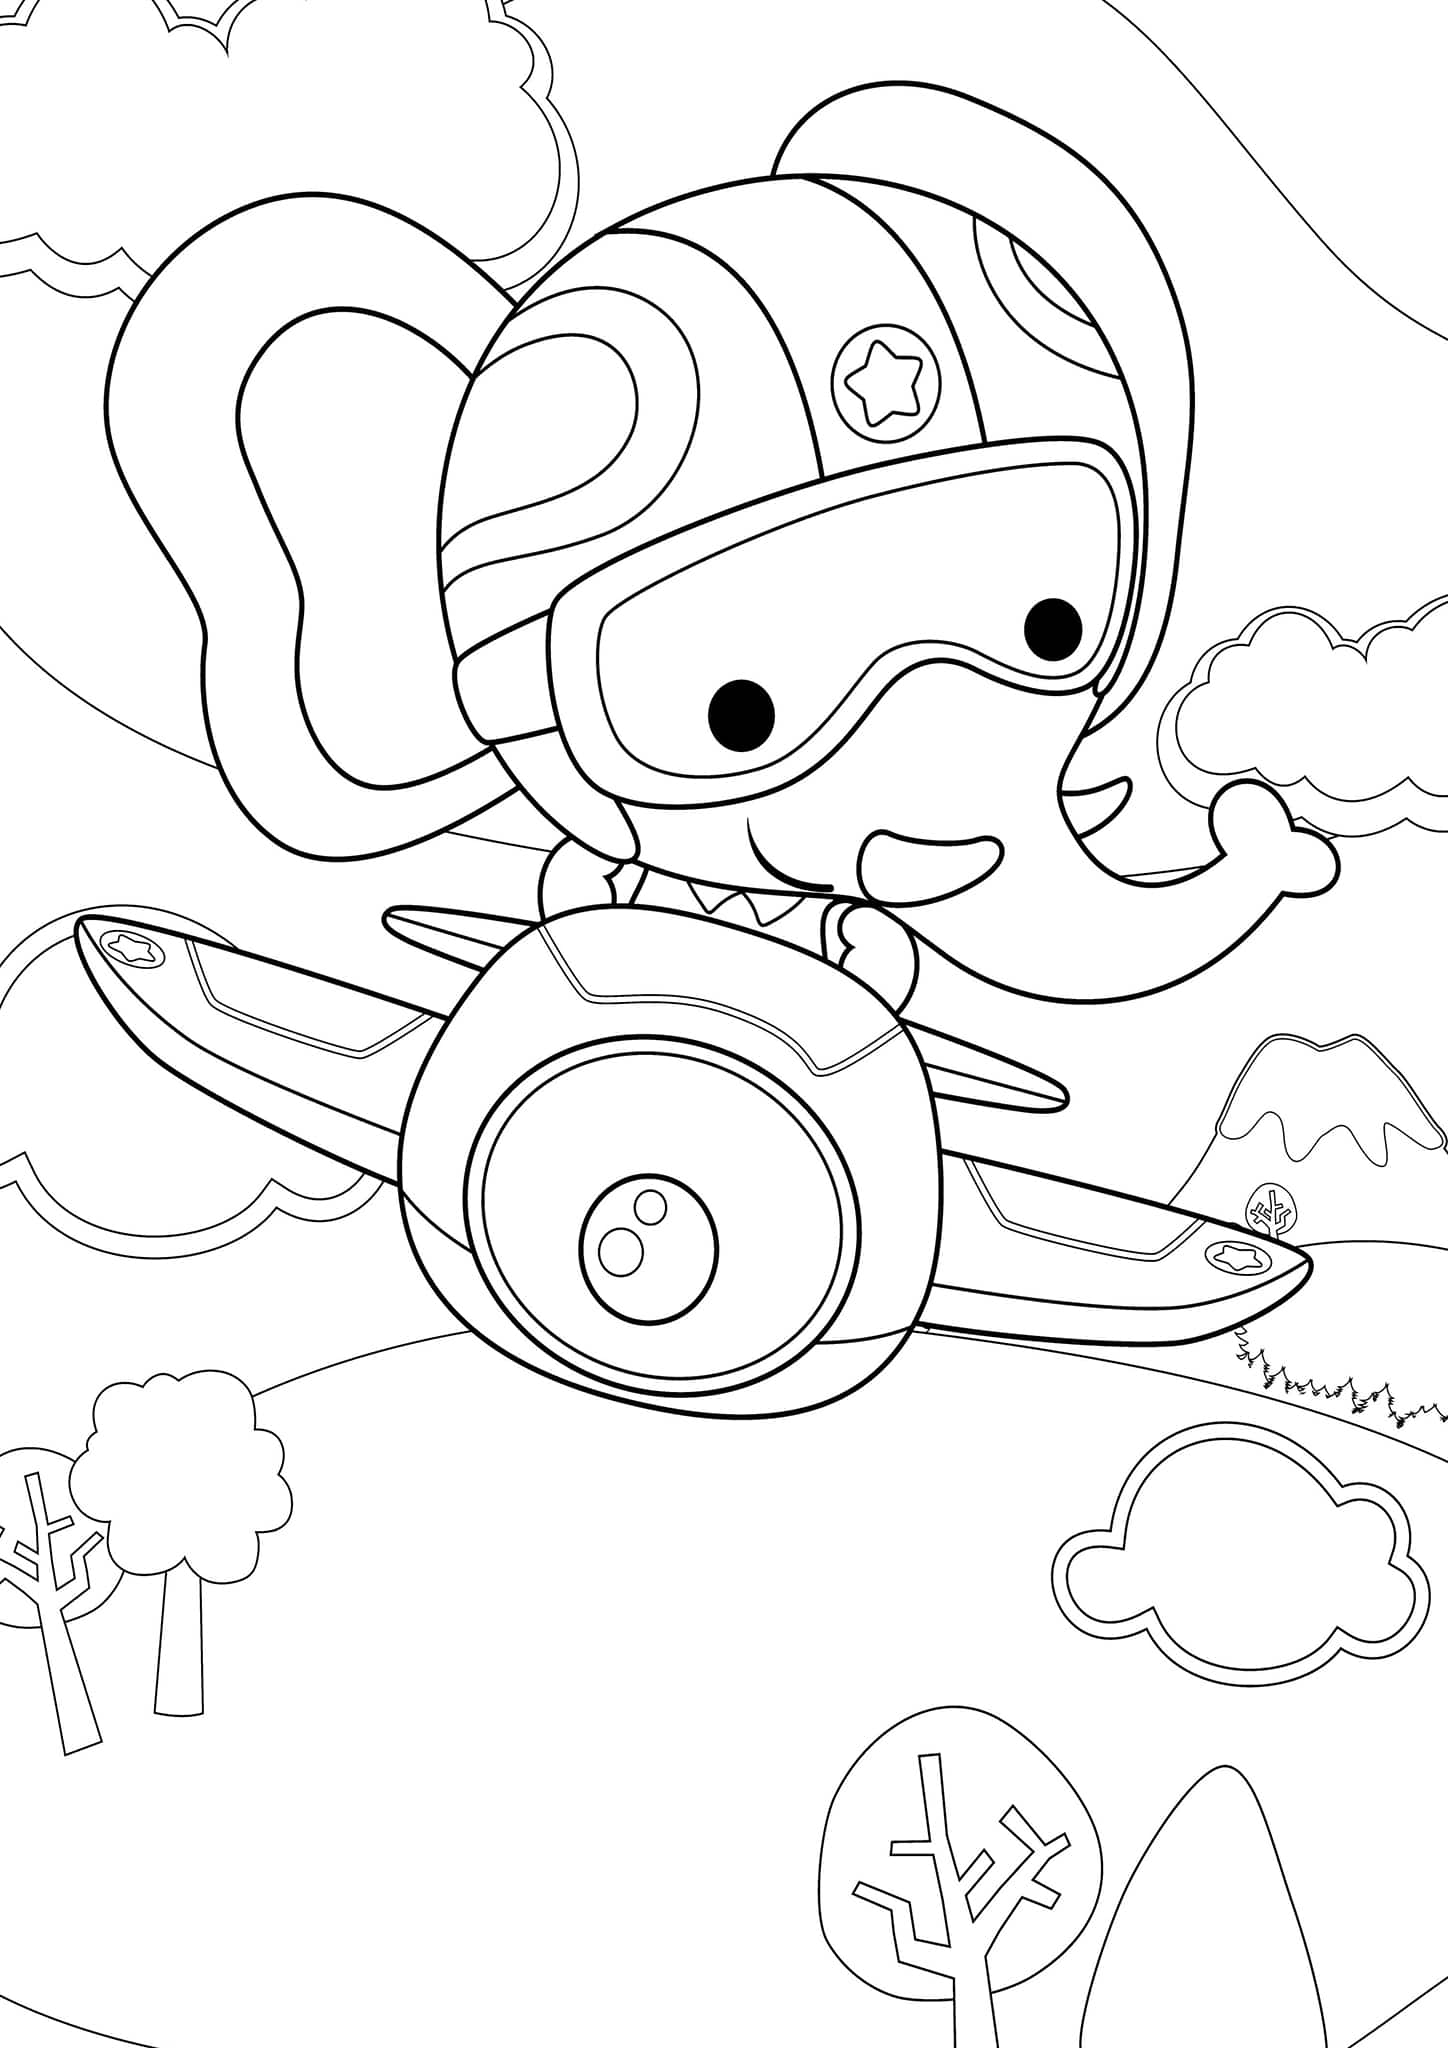 elephant picture for coloring jarvis varnado 14 elephant coloring pages for kids coloring for elephant picture